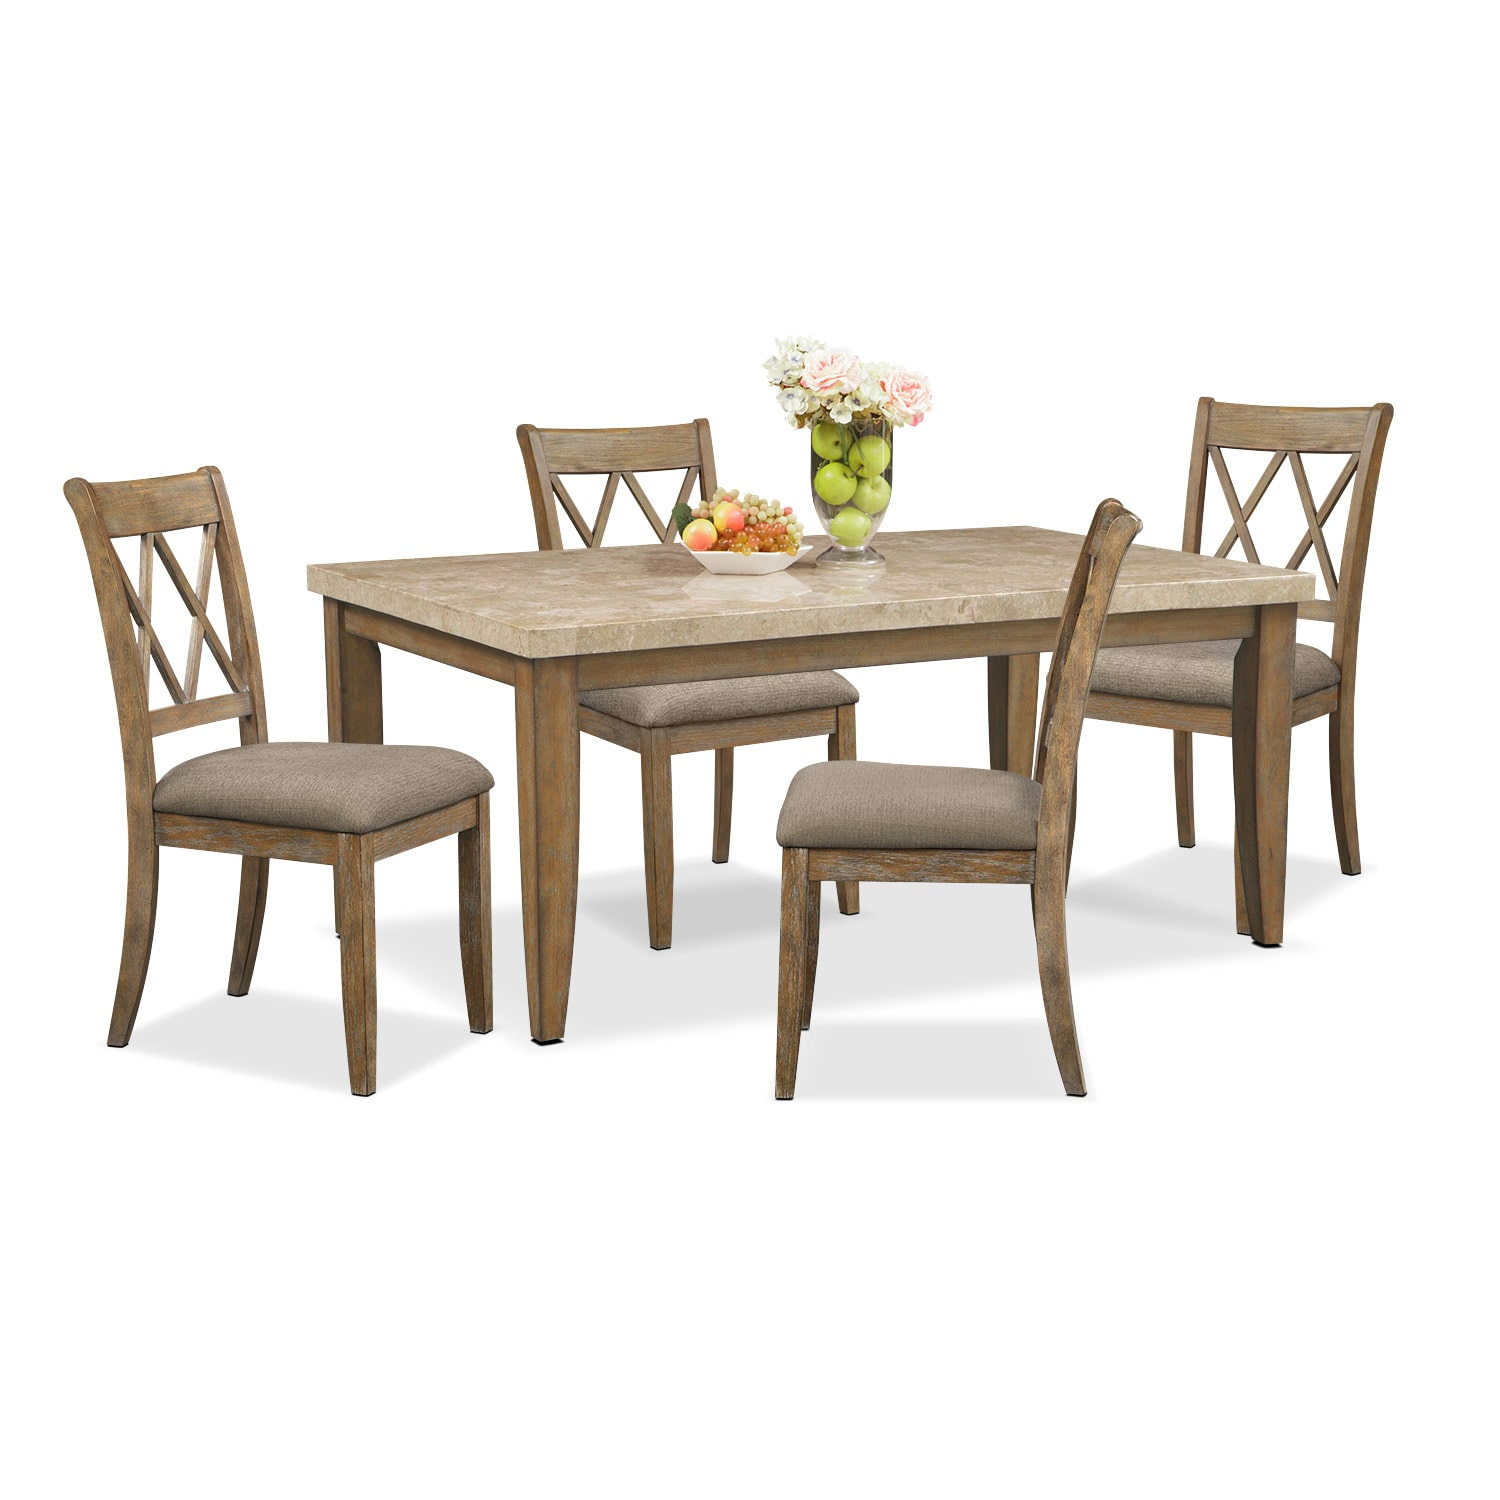 Dining Room Furniture - Sedona Gray 5 Pc. Dining Room